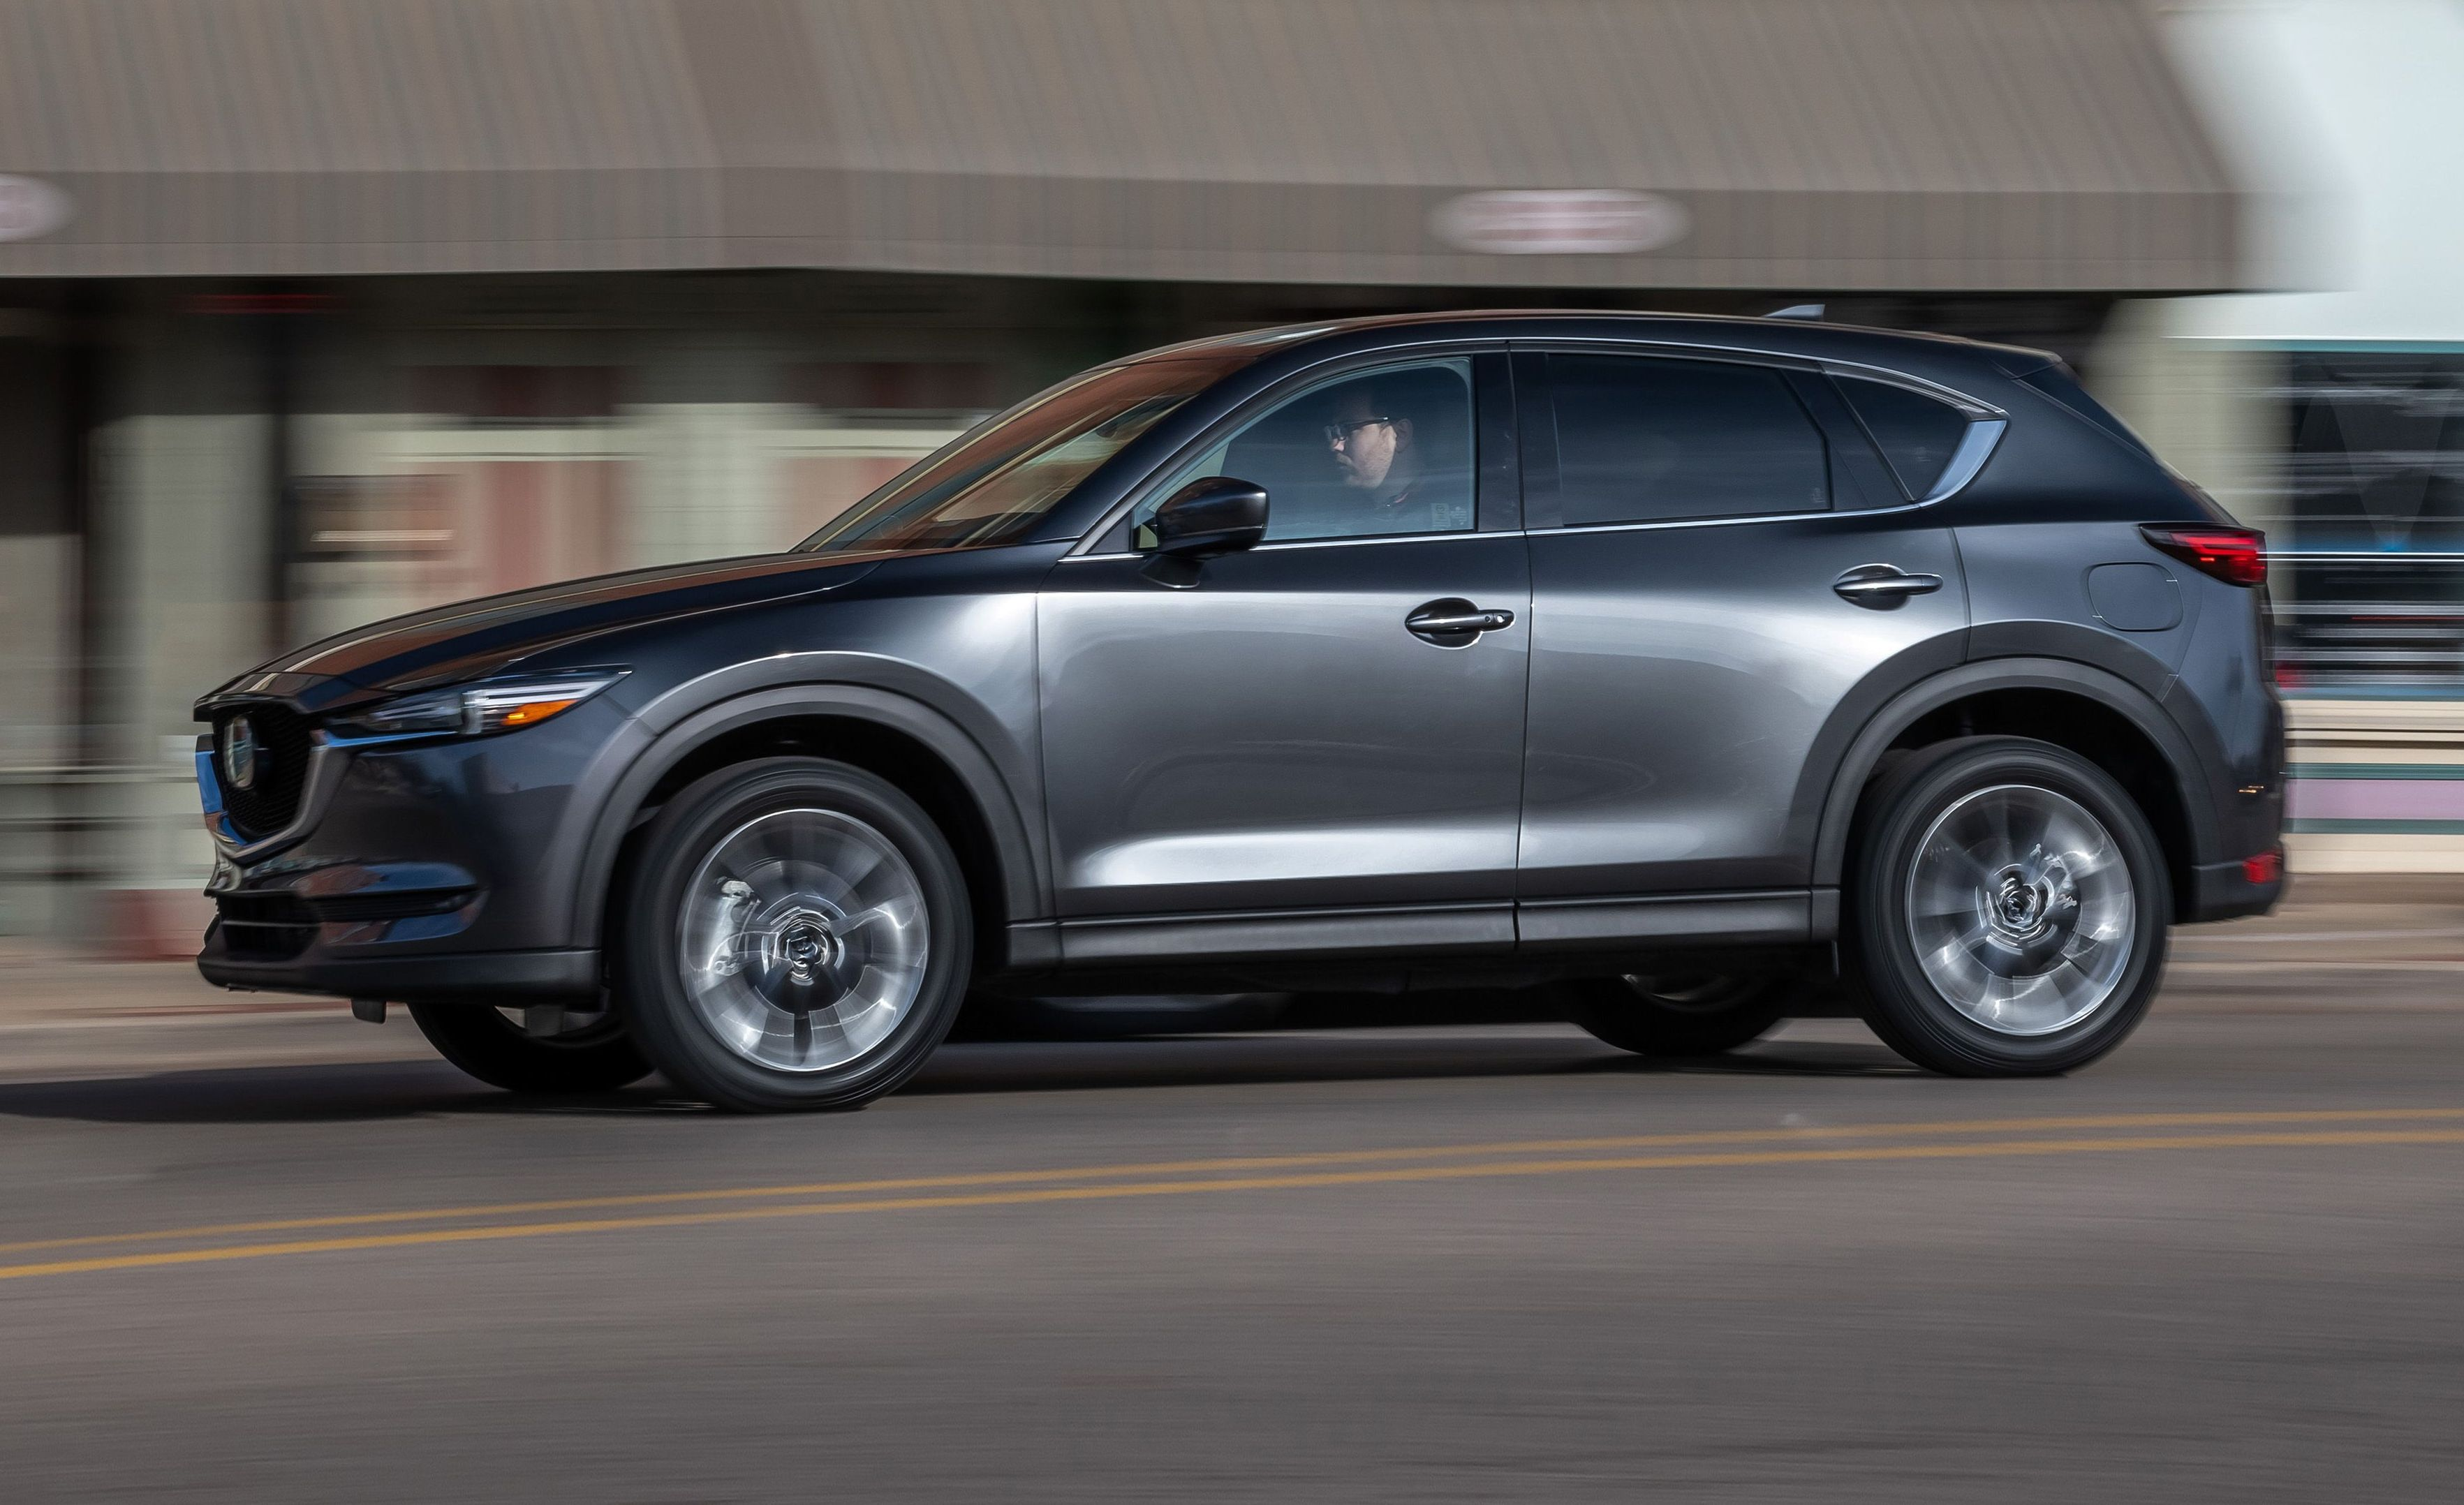 2019 mazda cx-5 reviews | mazda cx-5 price, photos, and specs | car